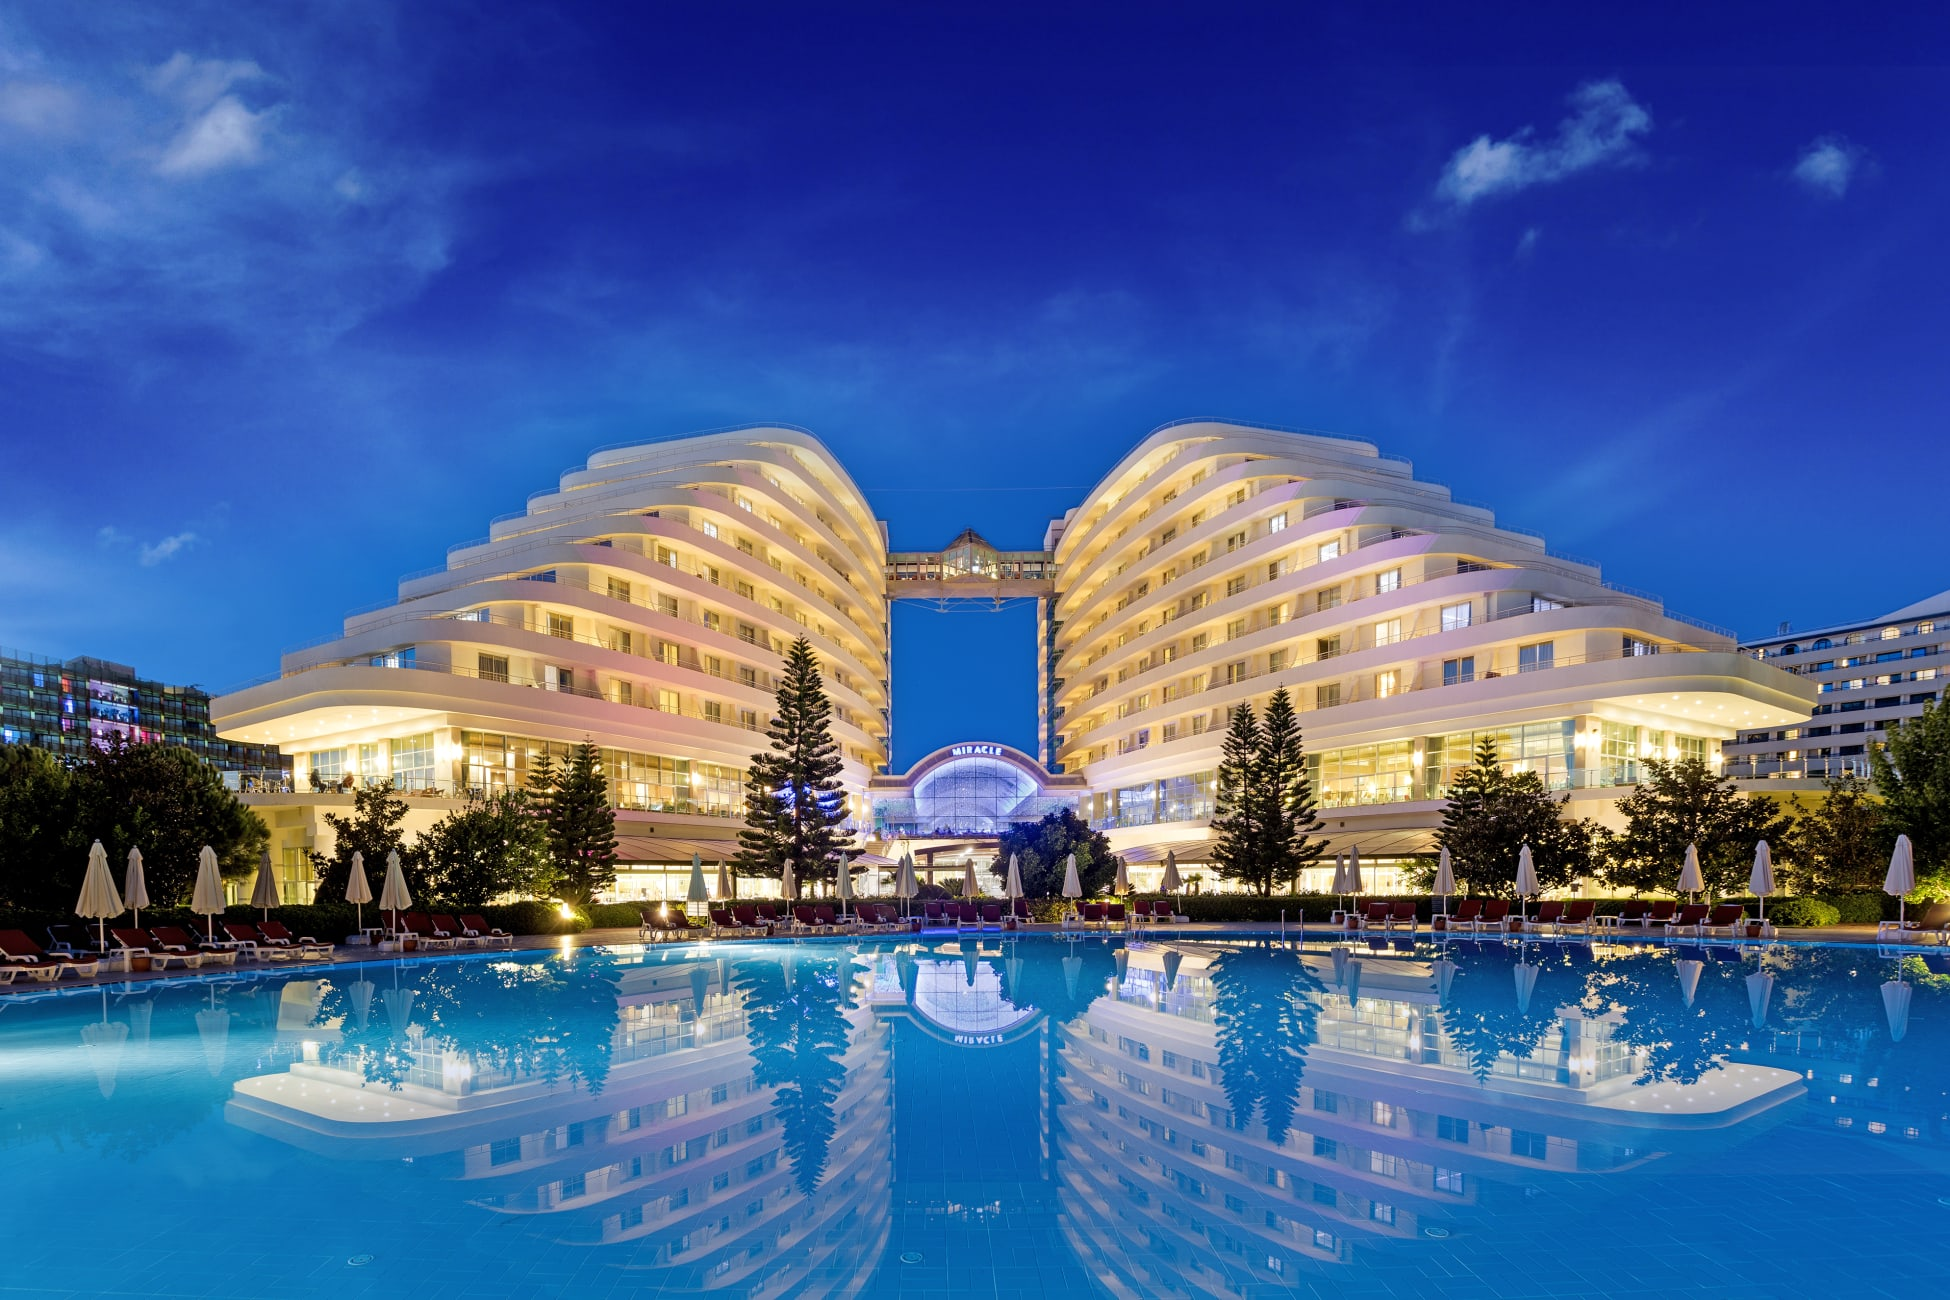 Resort Miracle Resort Hotel, لارا - ar.trivago.com